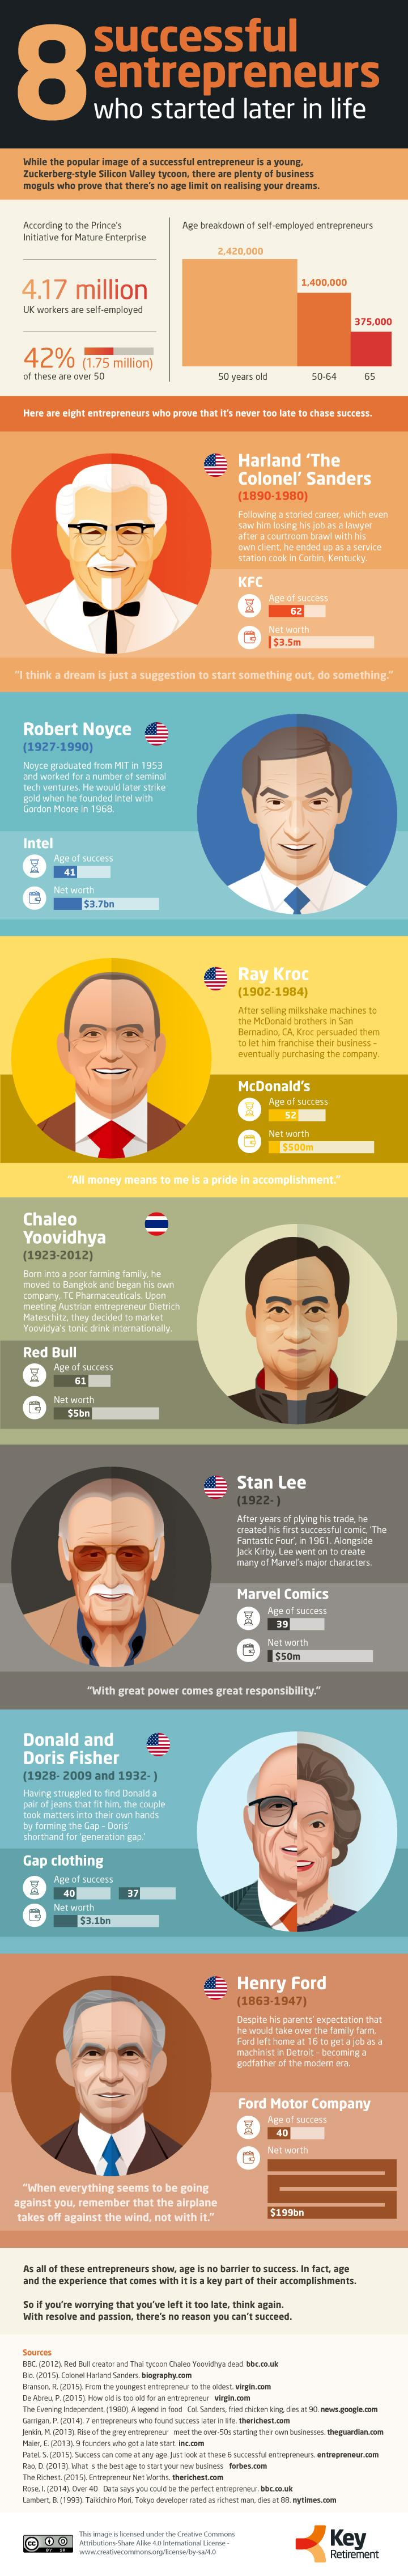 8-entrepreneurs-who-started-later-in-life